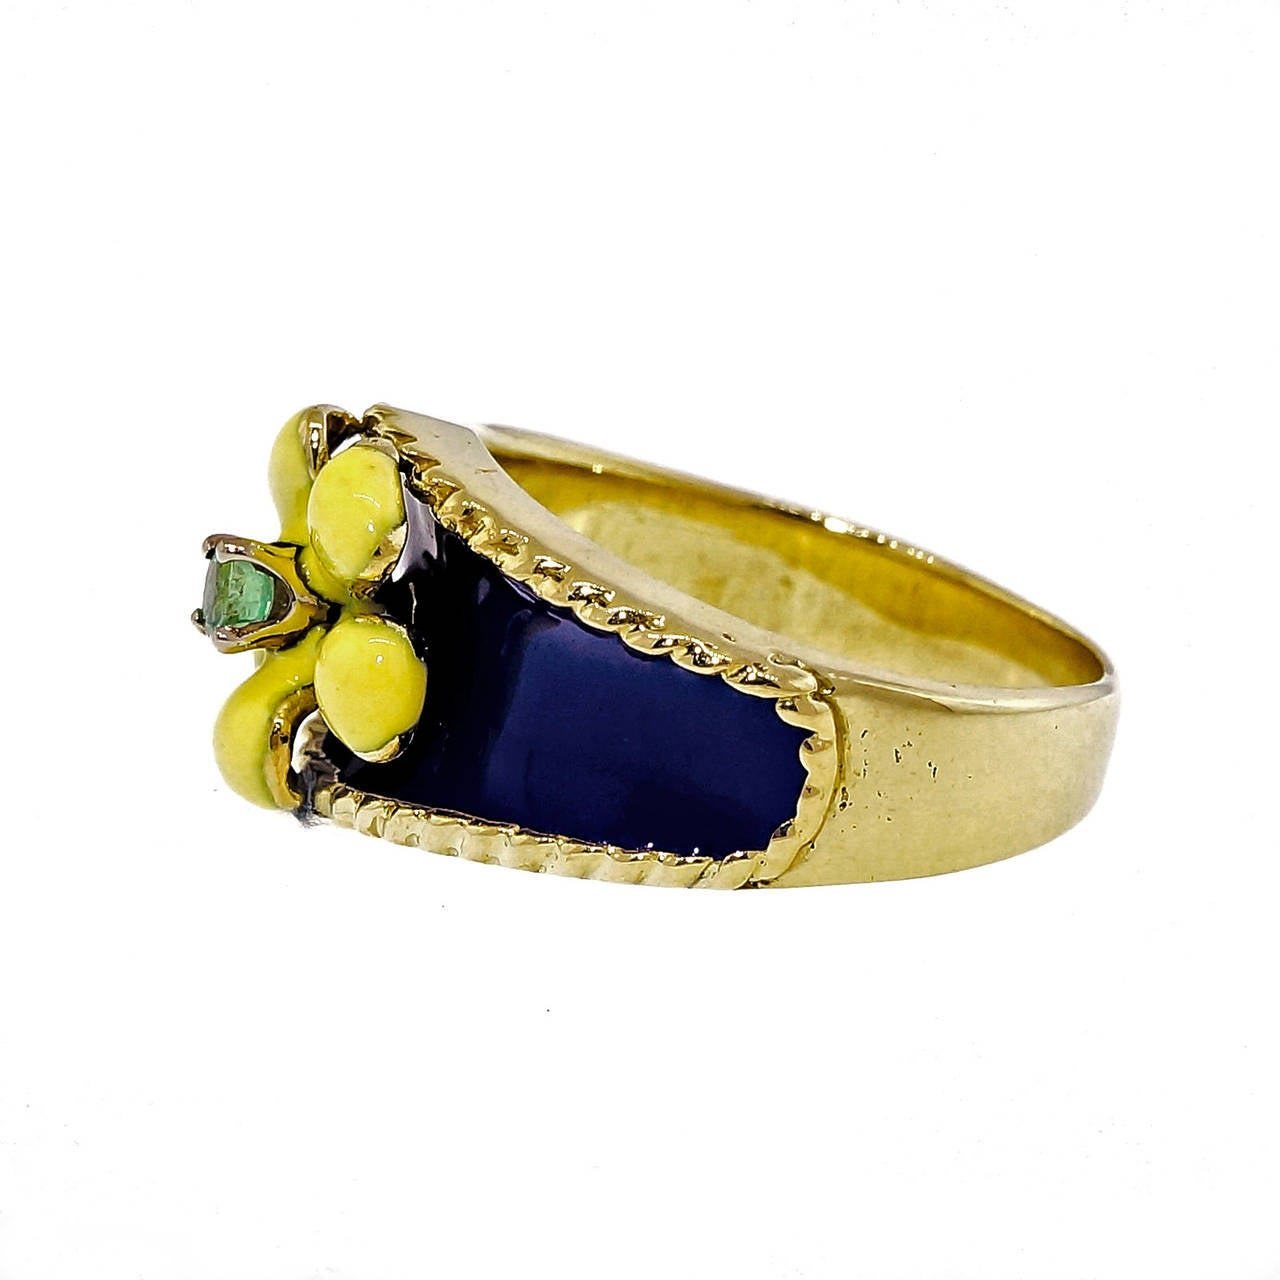 Wonderful 1950 18k yellow gold bright yellow and bright blue enamel ring with a bright green Emerald center. No enamel damage.